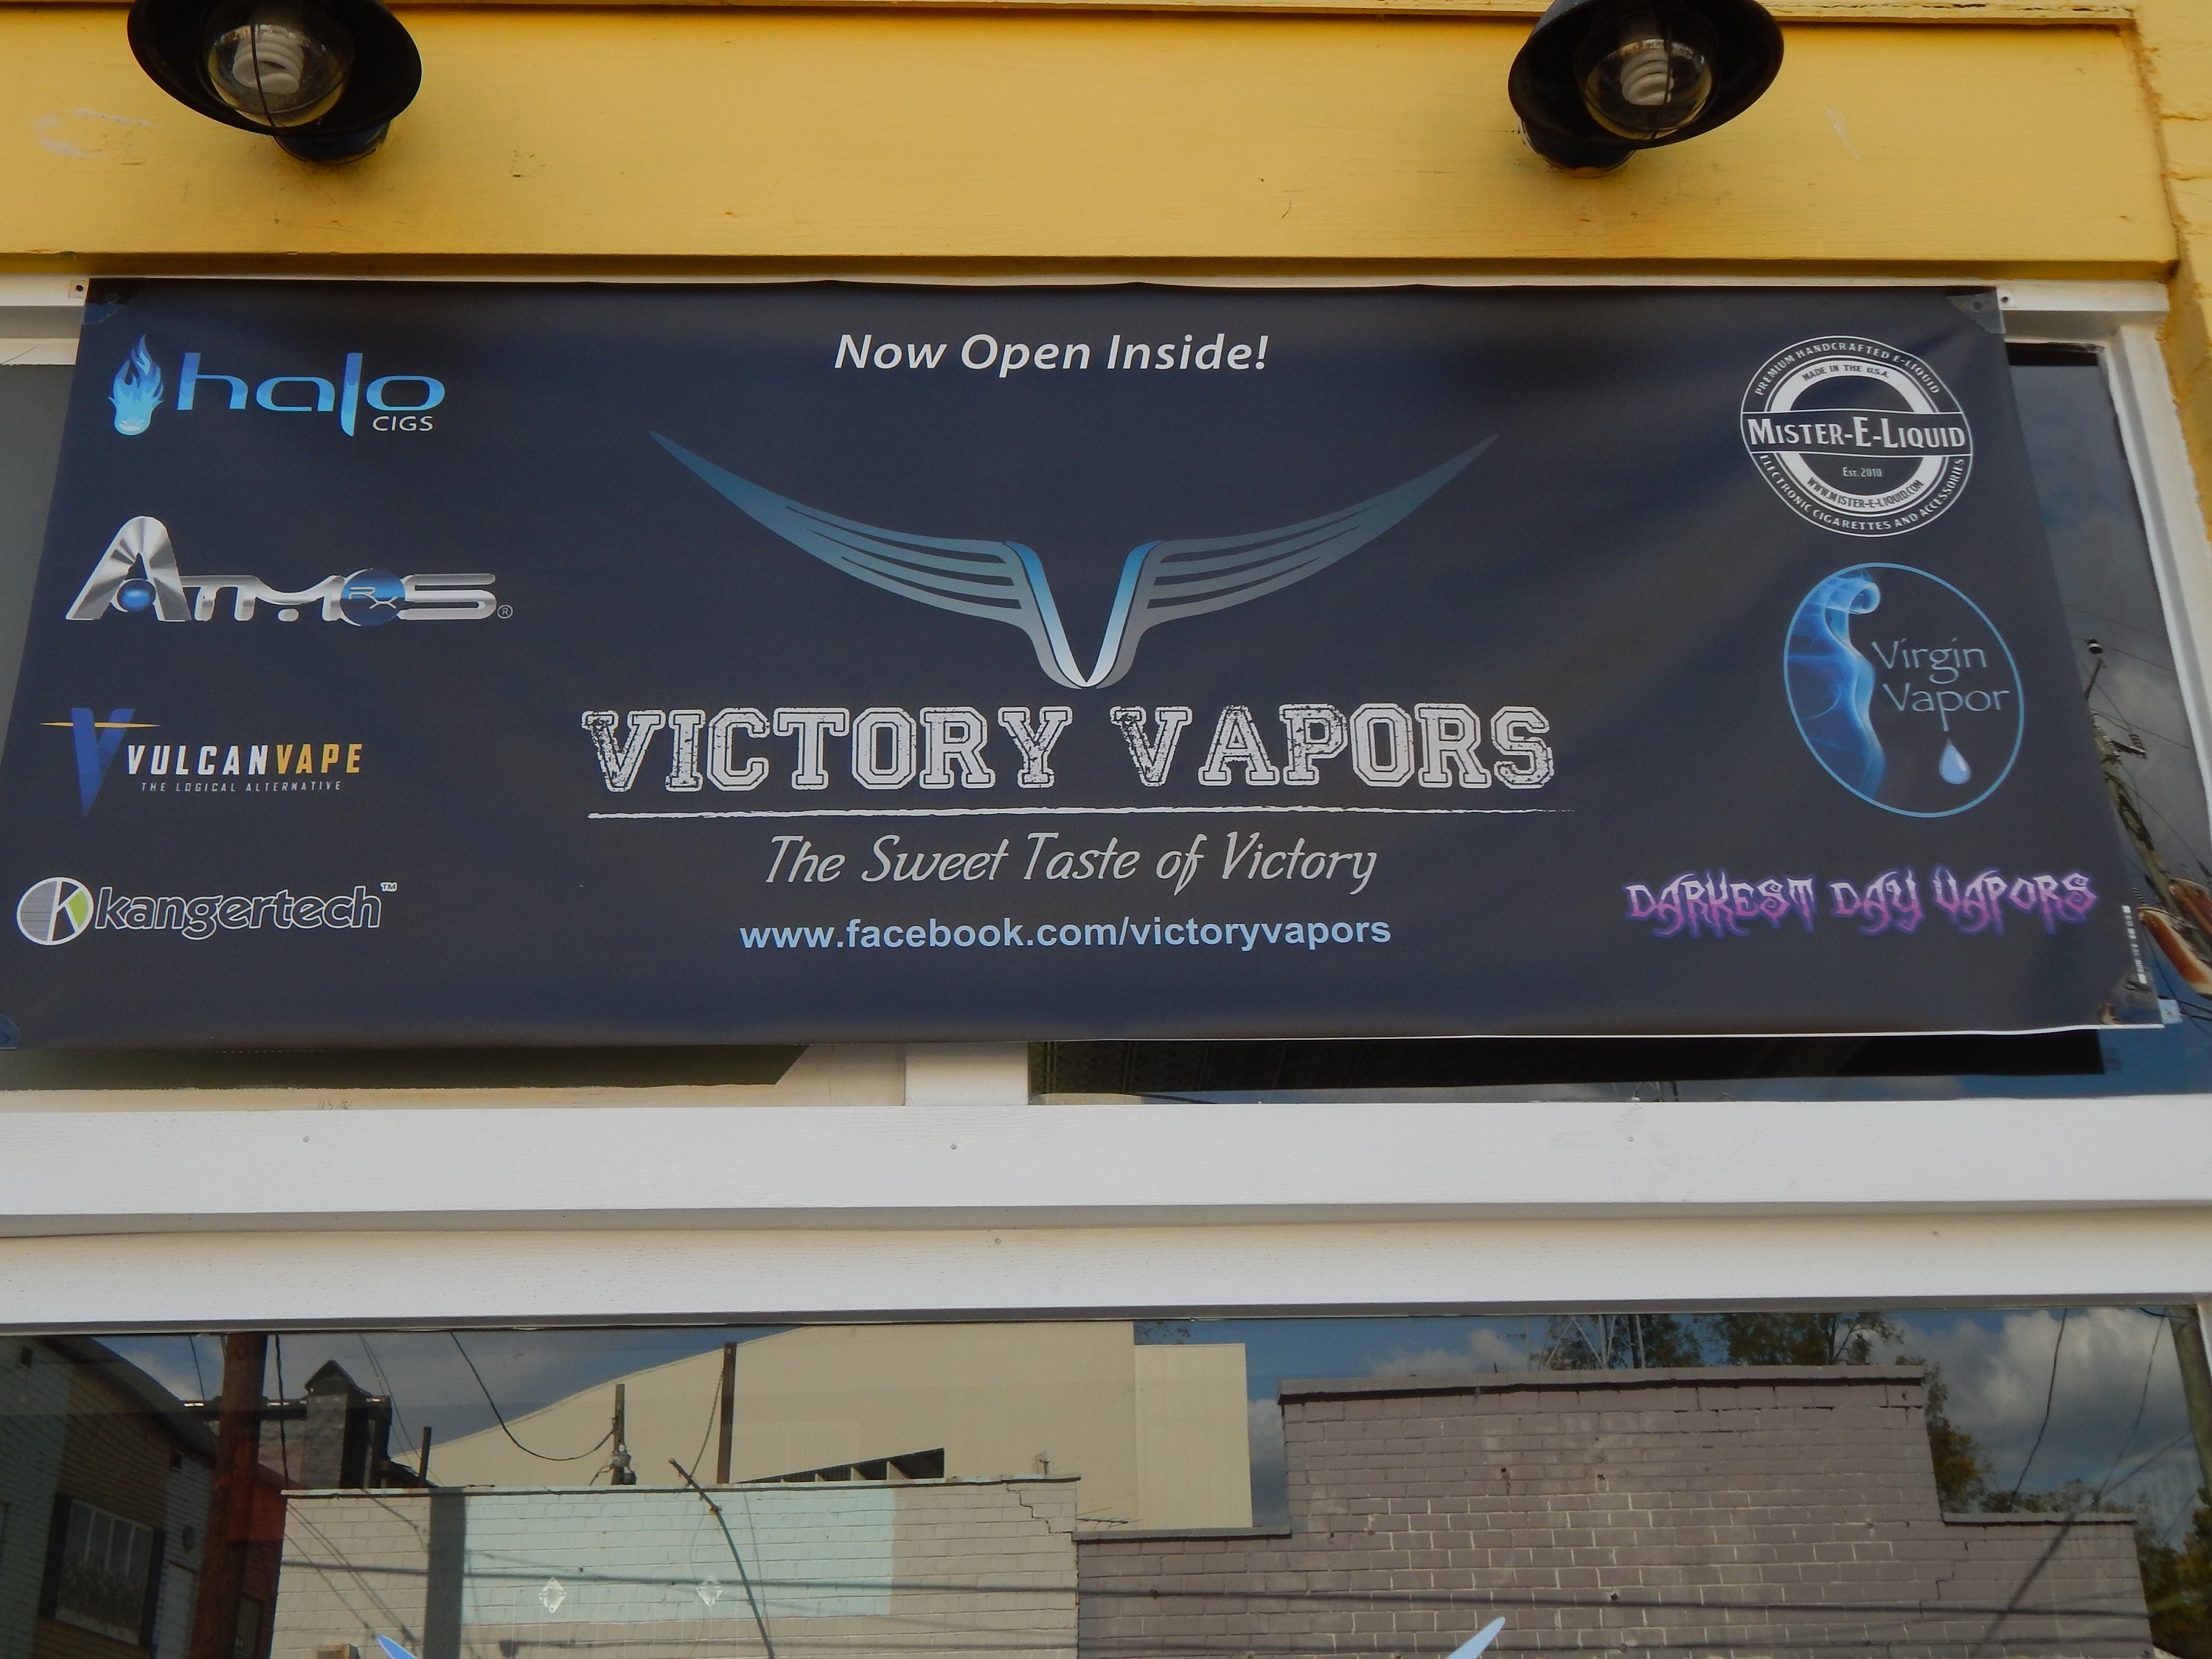 Taking stock of Victory Vapors